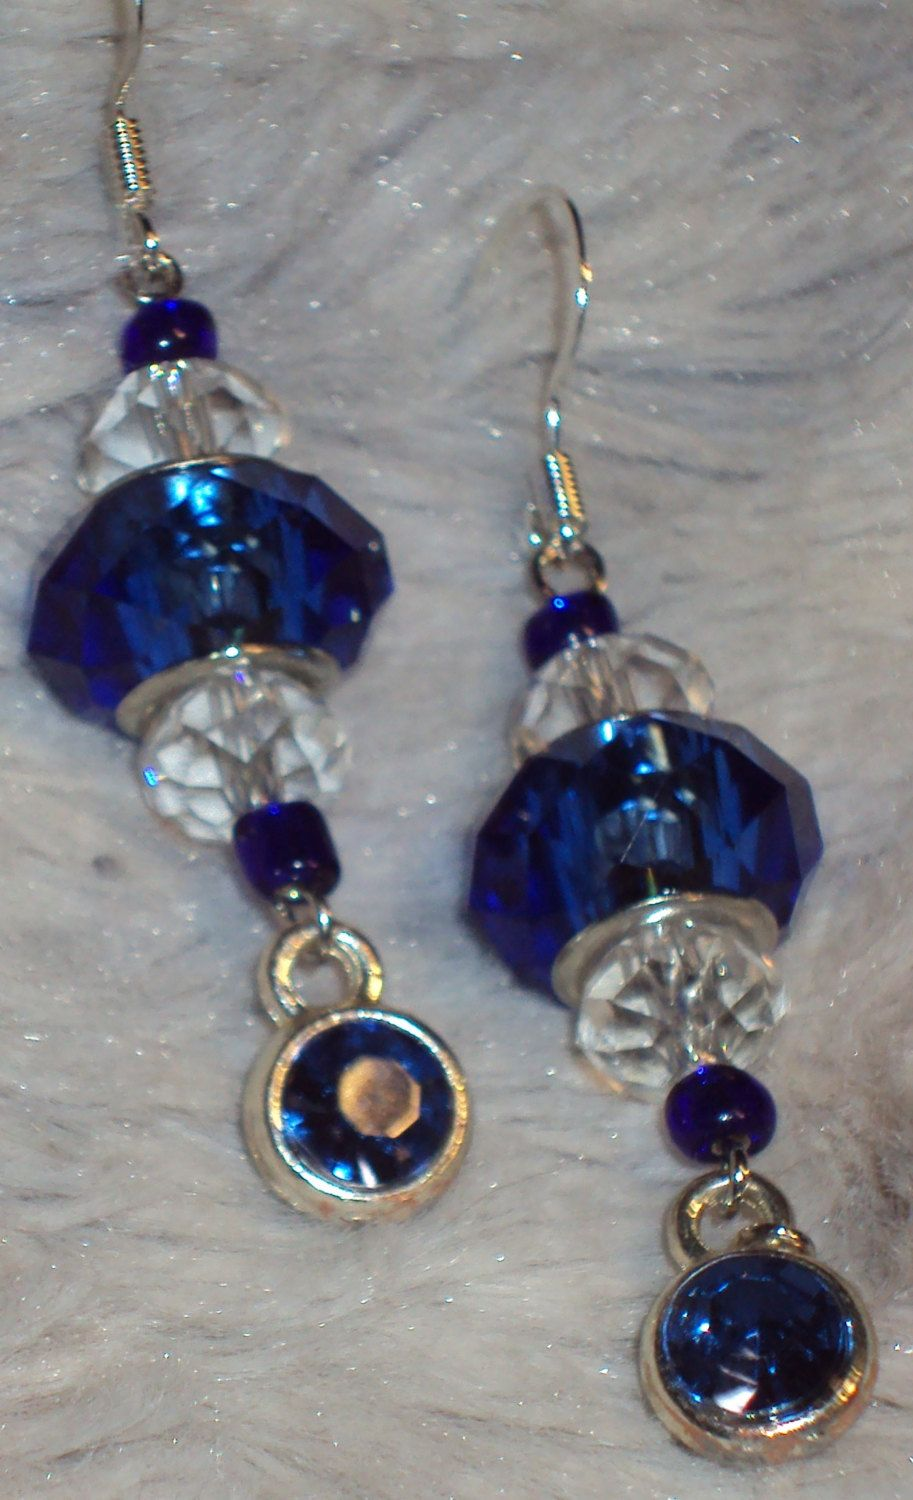 Royal Blue Glass Faceted Rhondelle with Clear Faceted Glass and Drop Royal Blue Rhinestone Earrings Handcrafted by JewelryByTracyO on Etsy